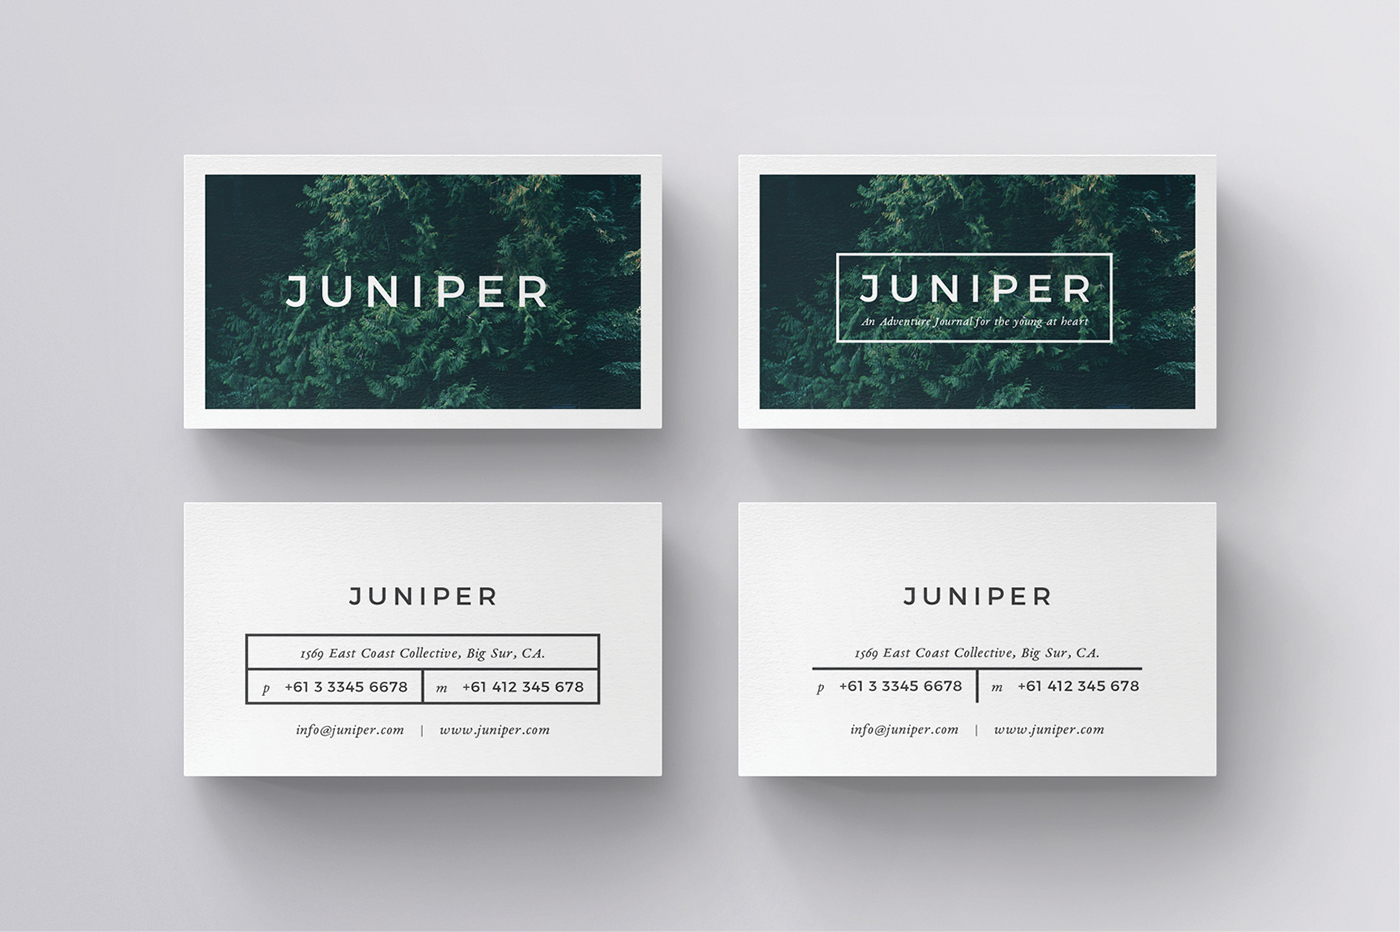 J u n i p e r business card on behance j u n i p e r business card template is available for purchase through my website and creative market reheart Gallery